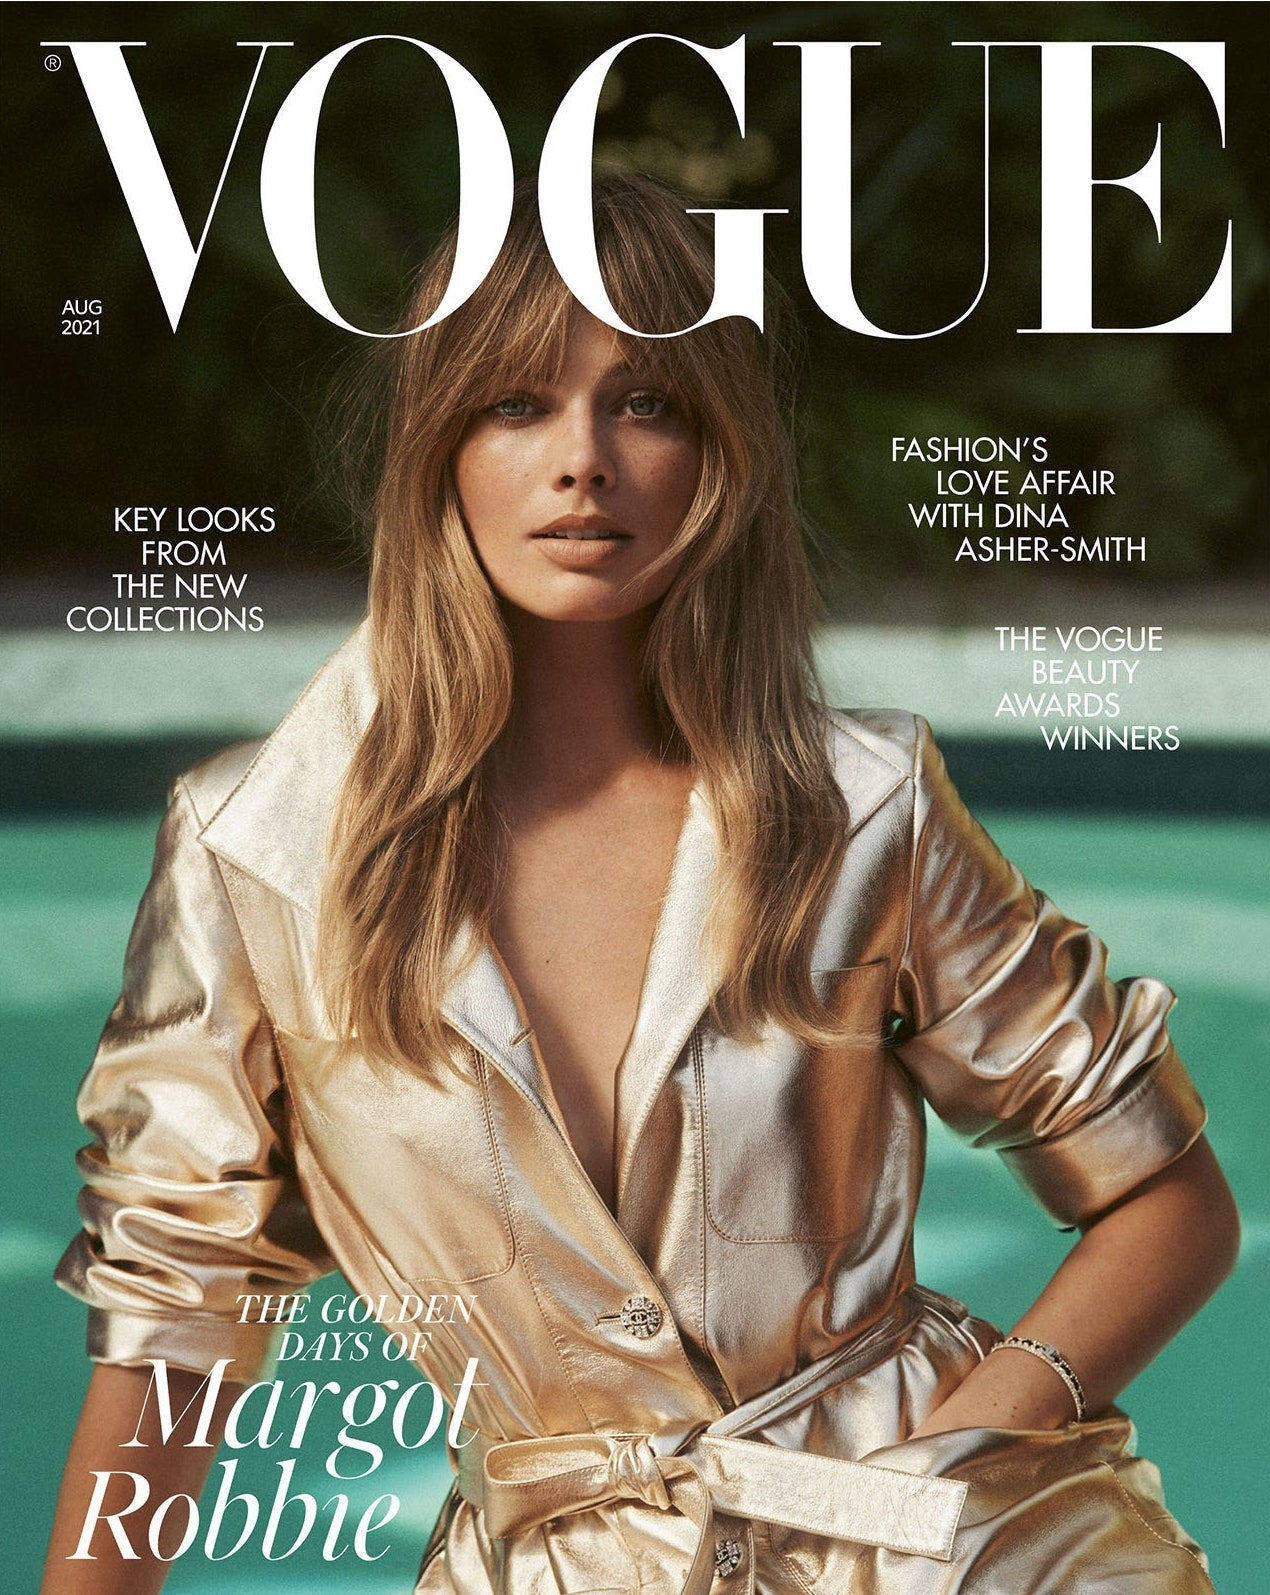 Vogue Magazine August 2021 Front Cover